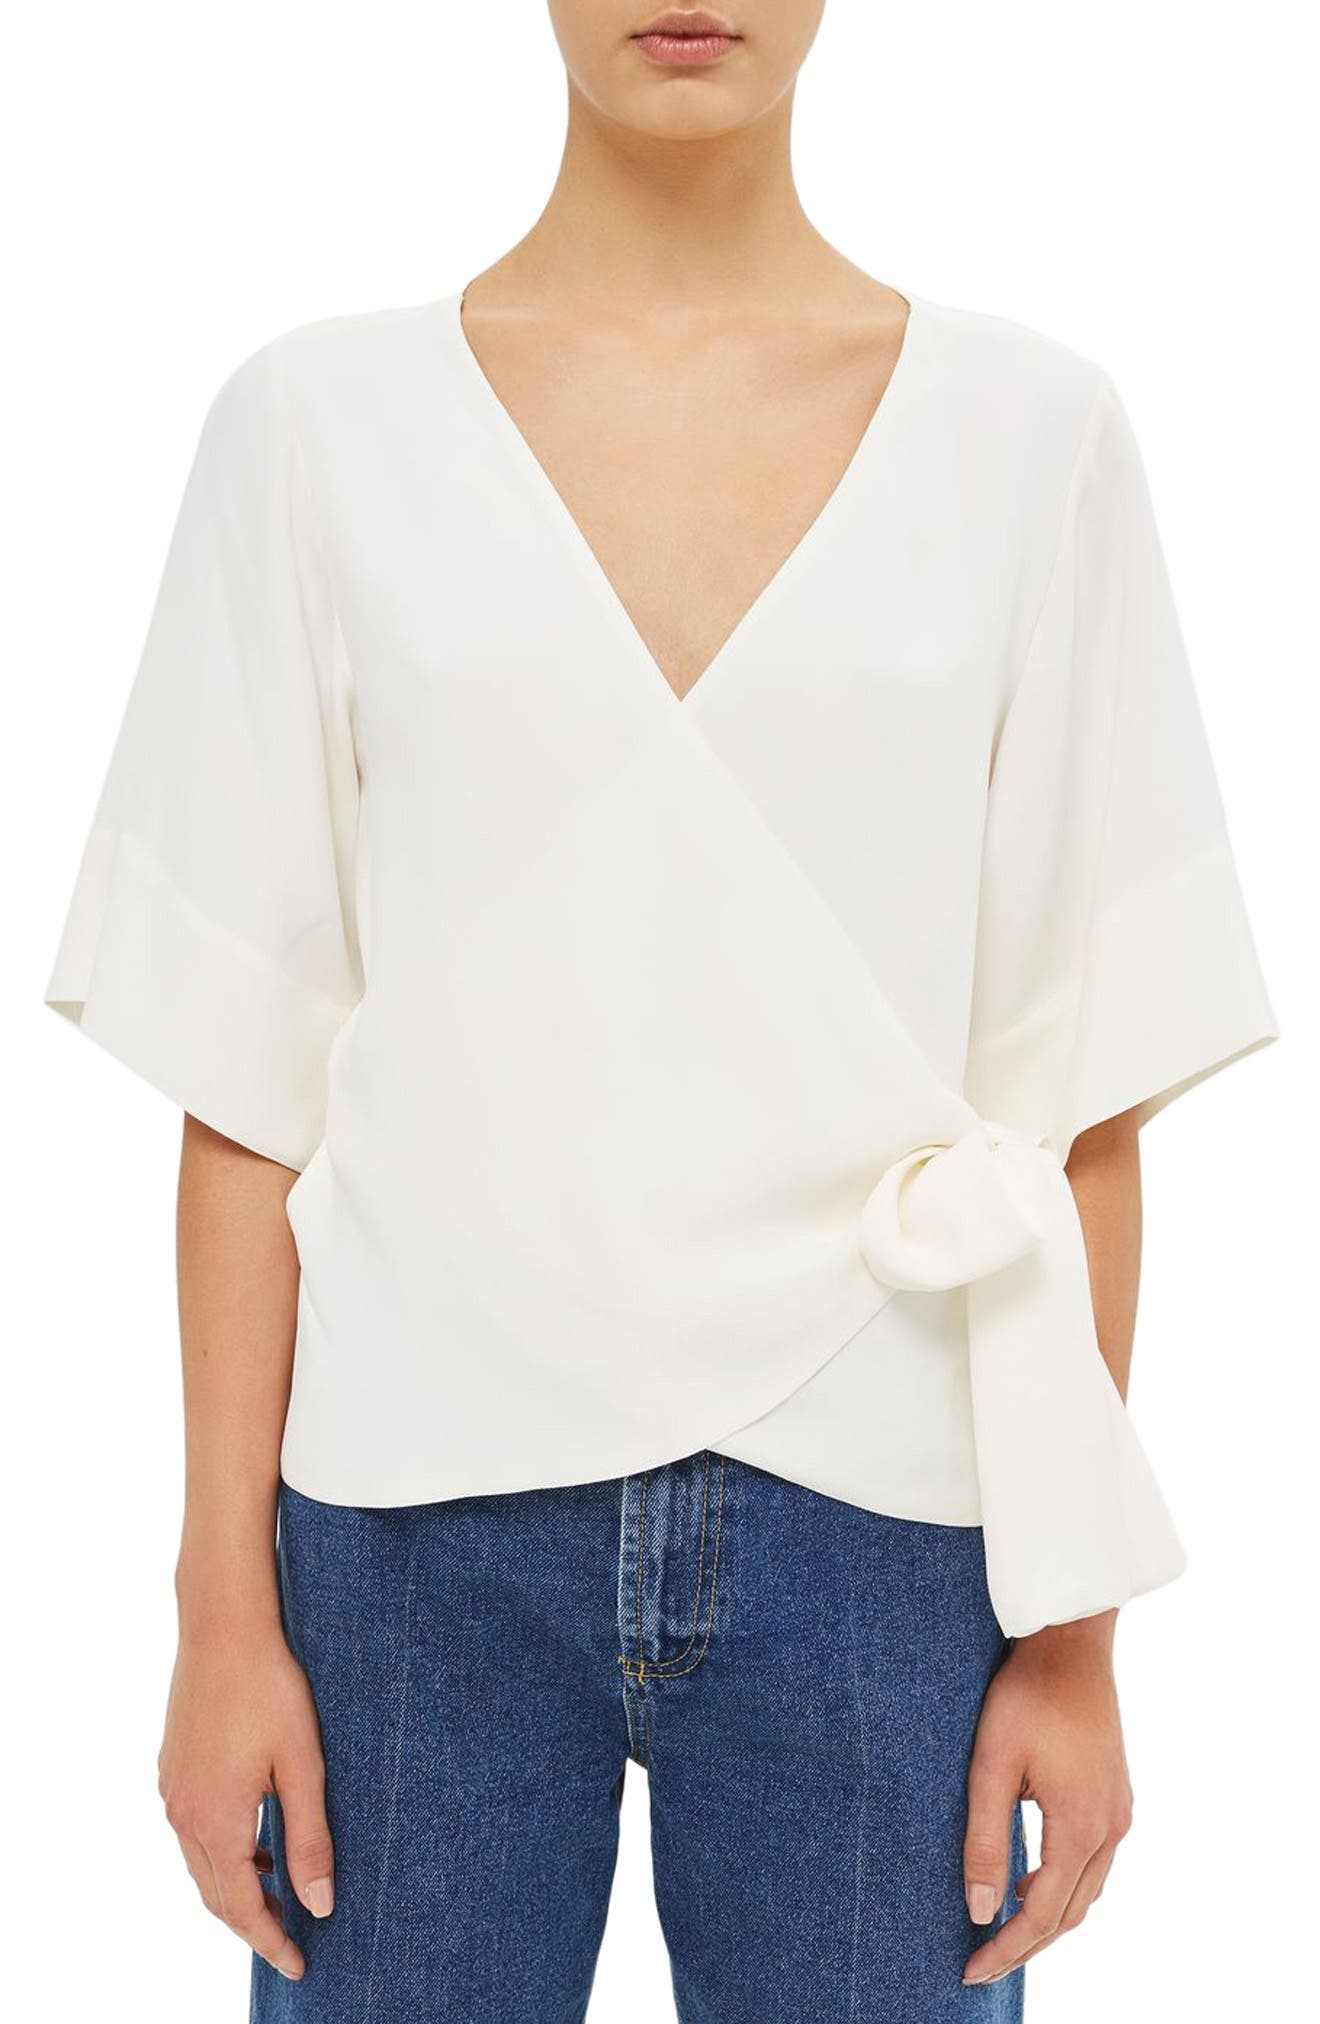 Topshop Boutique Crepe Wrap Top